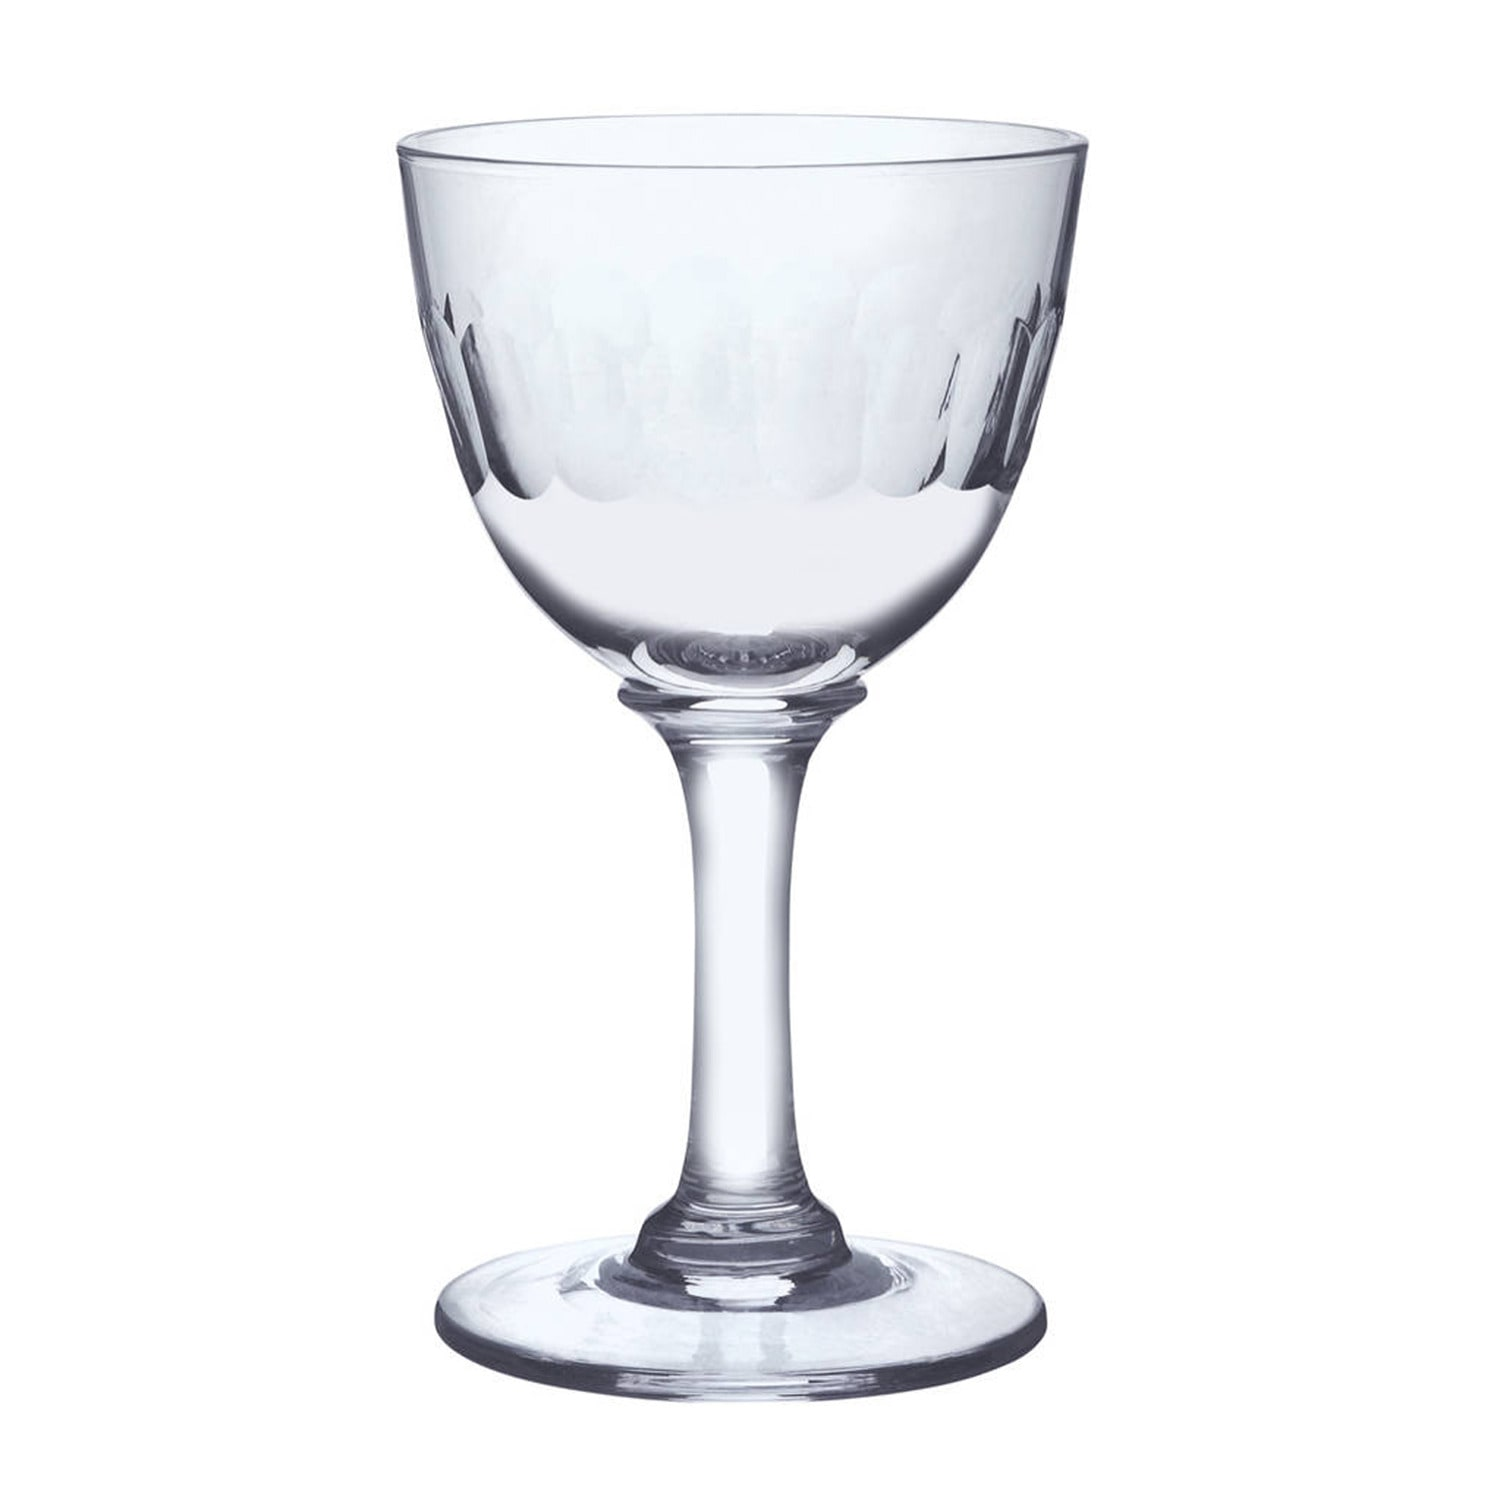 The Vintage List - Six Hand-Engraved Crystal Liqueur Glasses with Lens Design